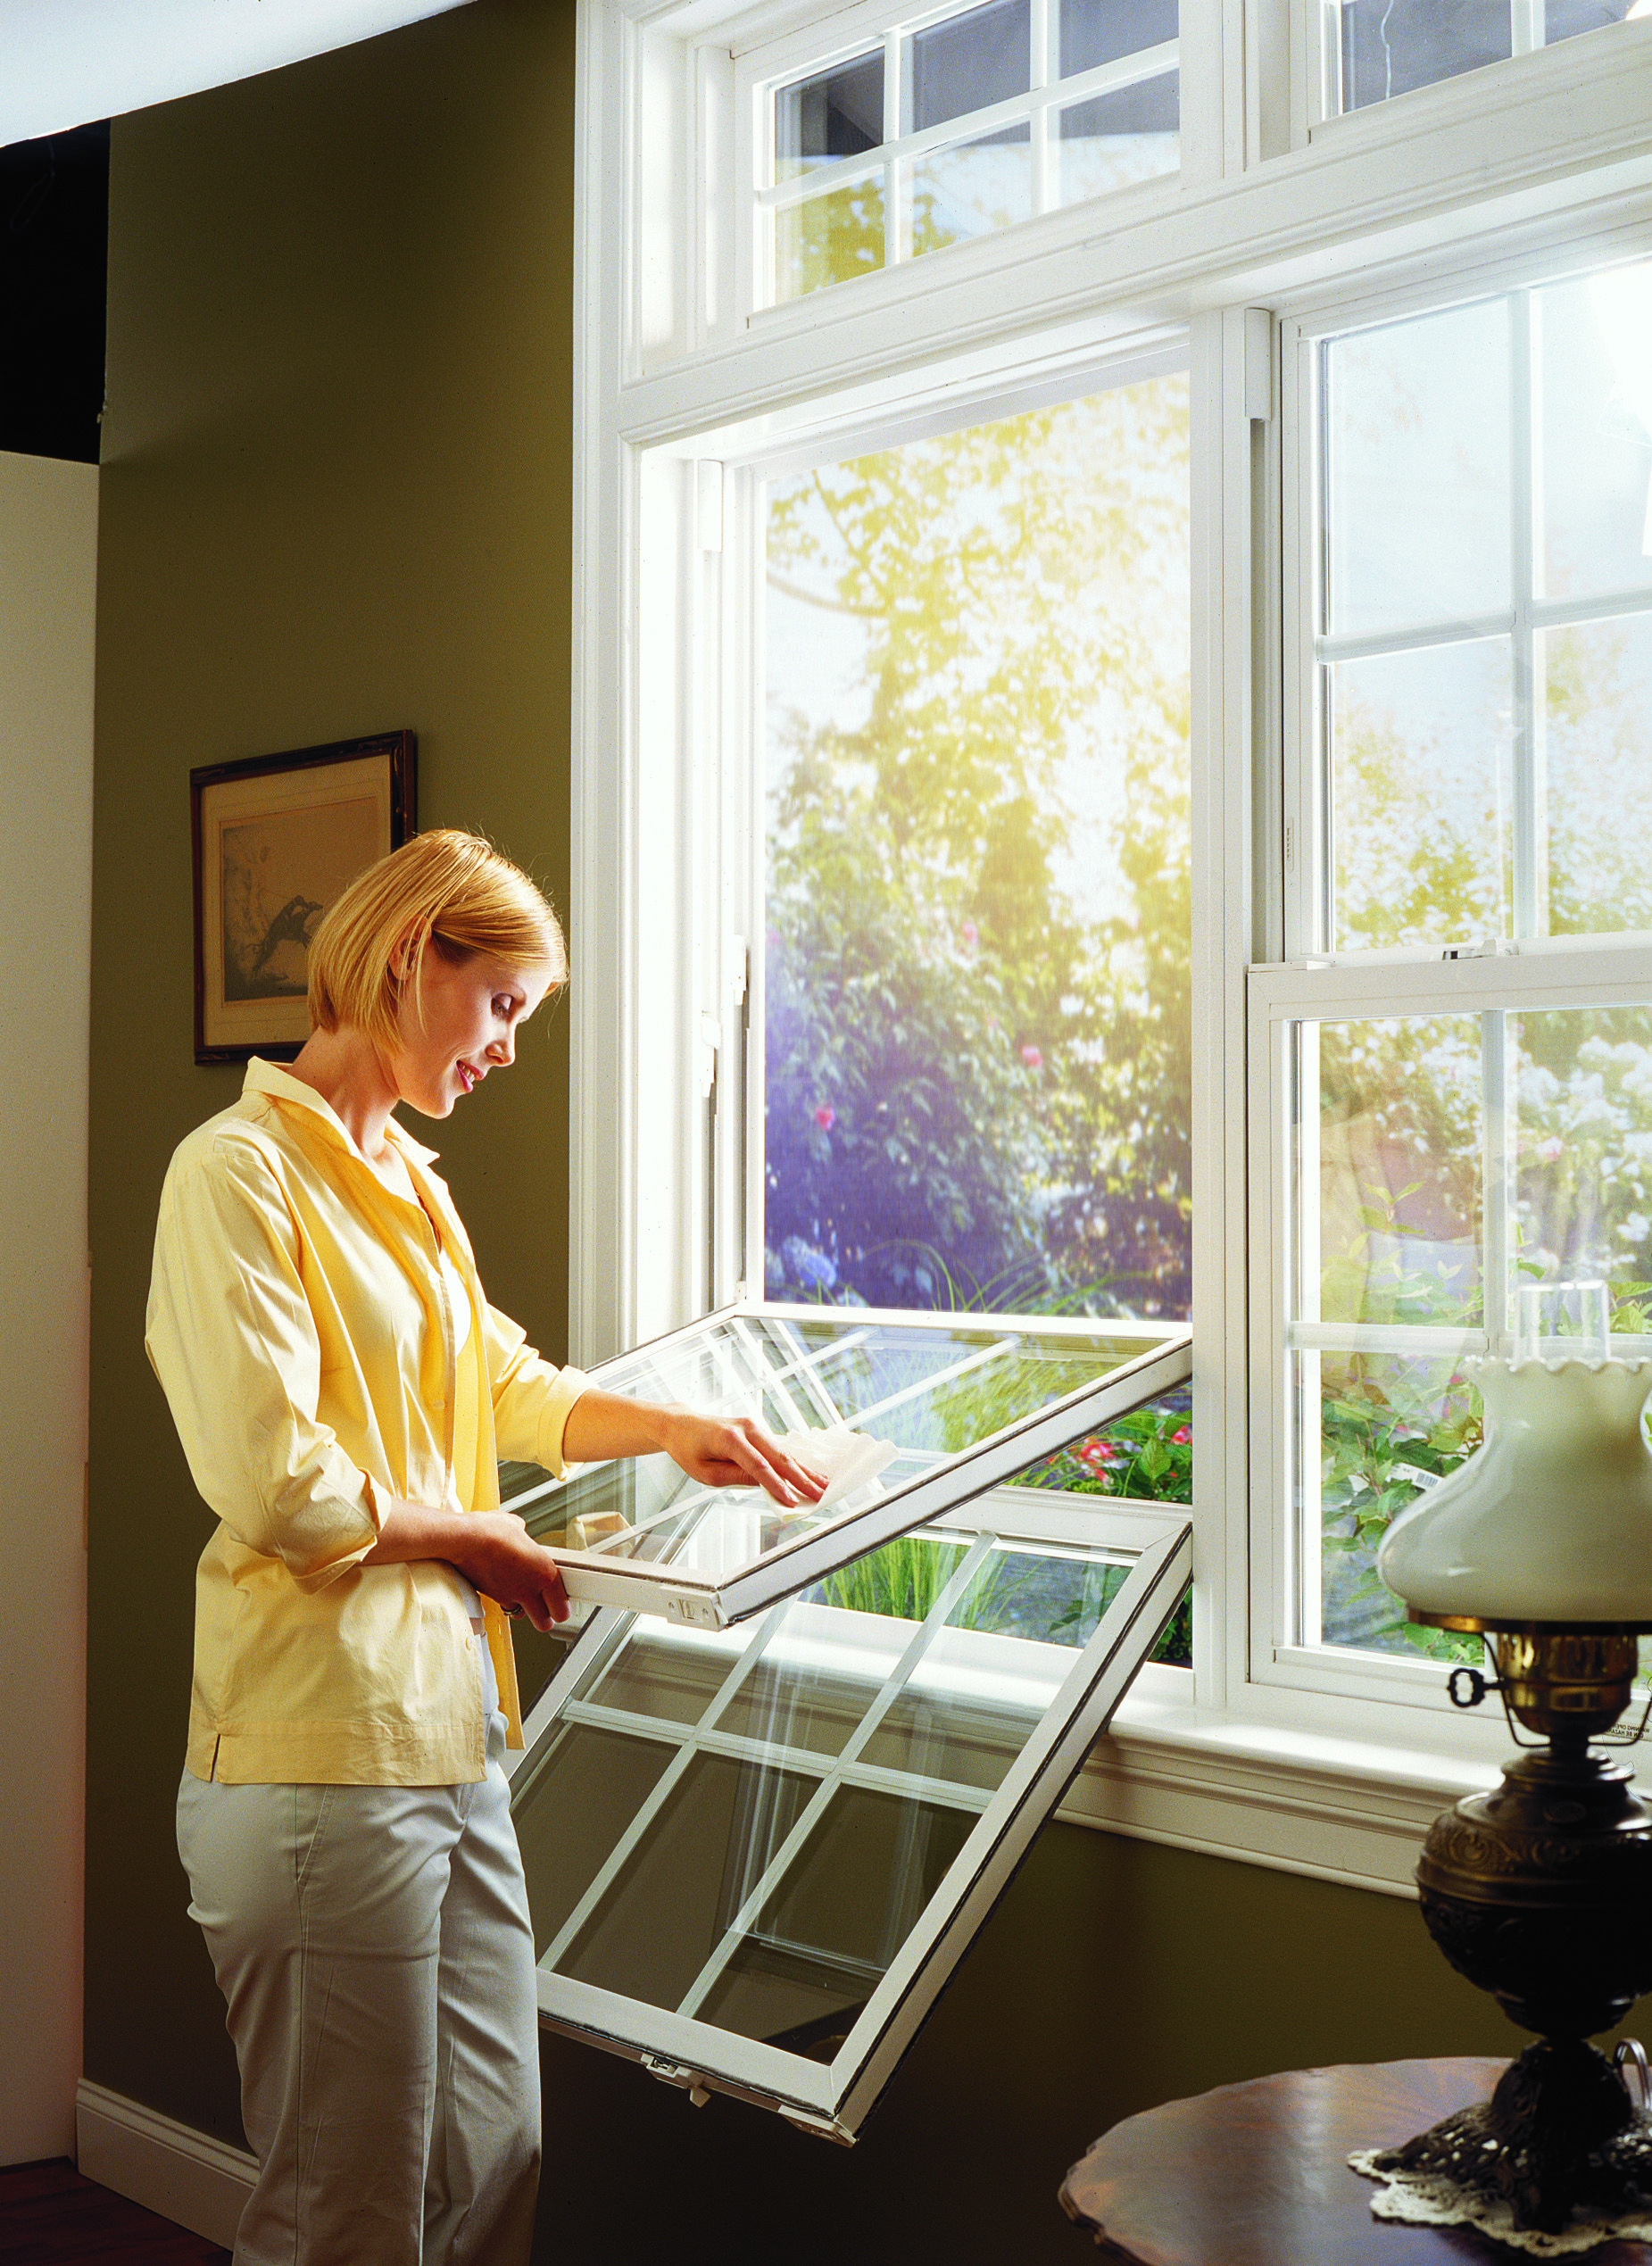 Mi Windows Are Sold At Mcdaniel Window And Door Co In Florence Al Www Mcdanielwd Com Window Construction Windows Building